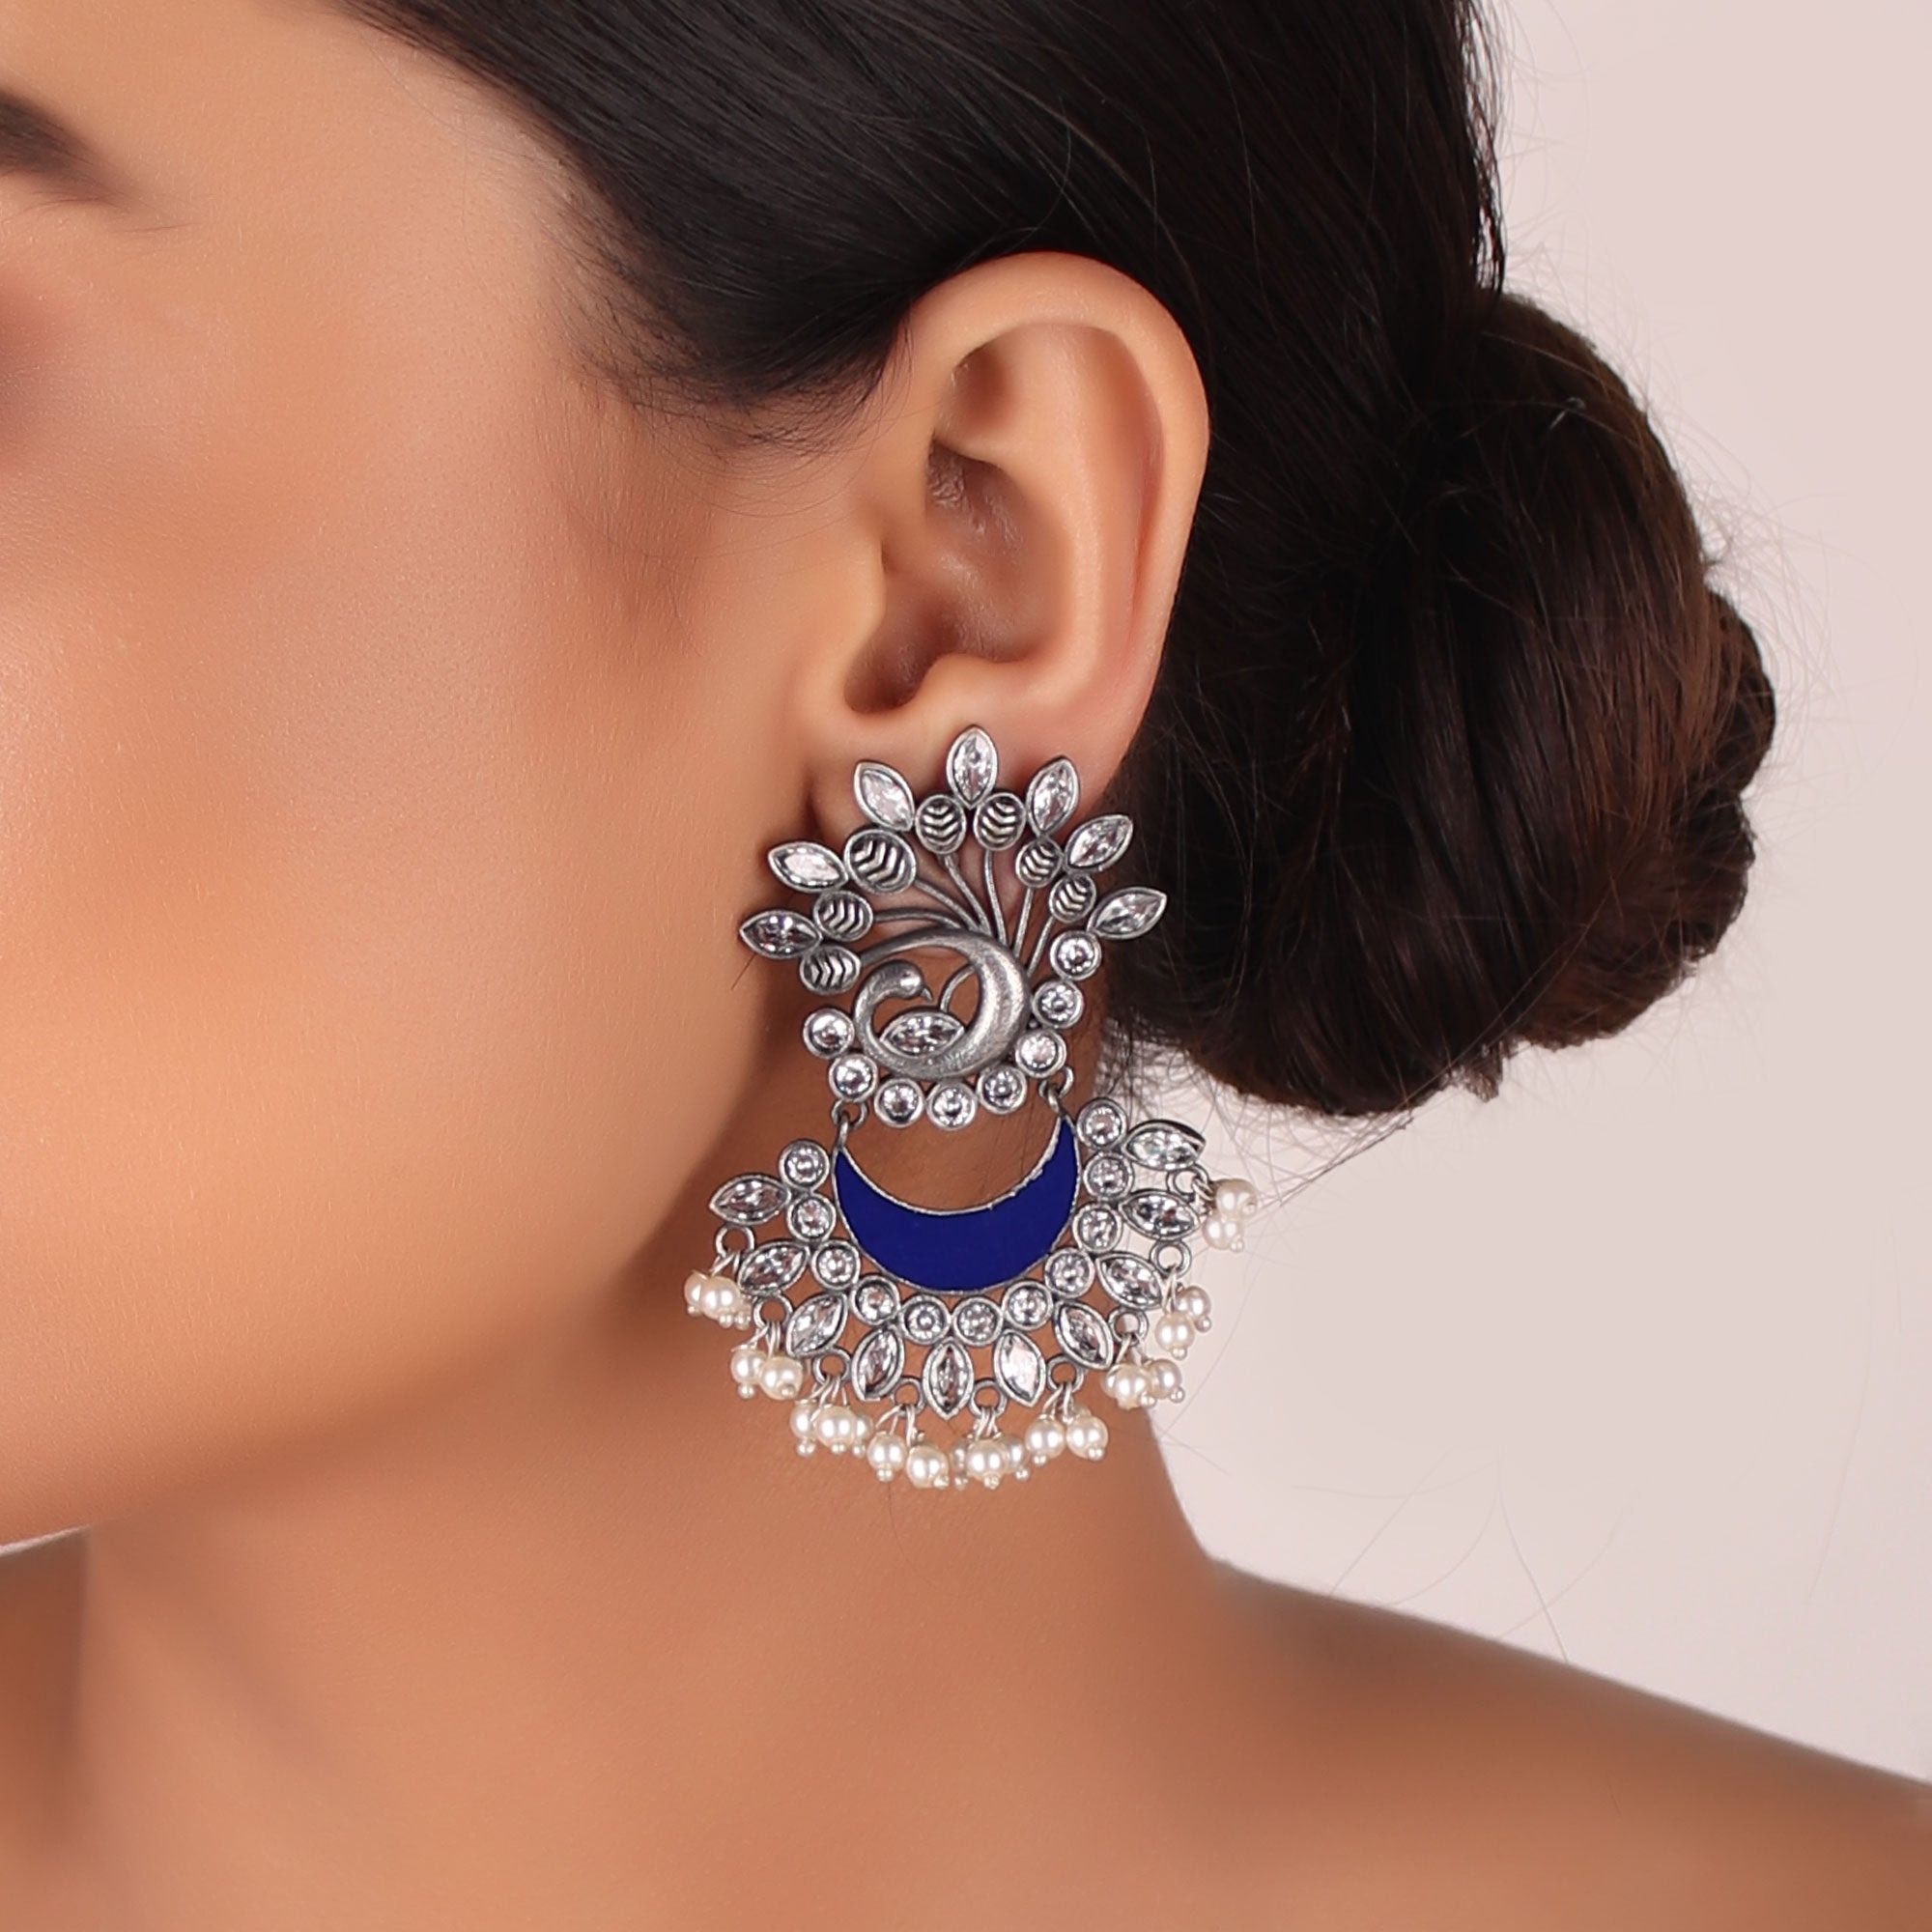 The Nataraj Peacock Earring with Pinch of Blue